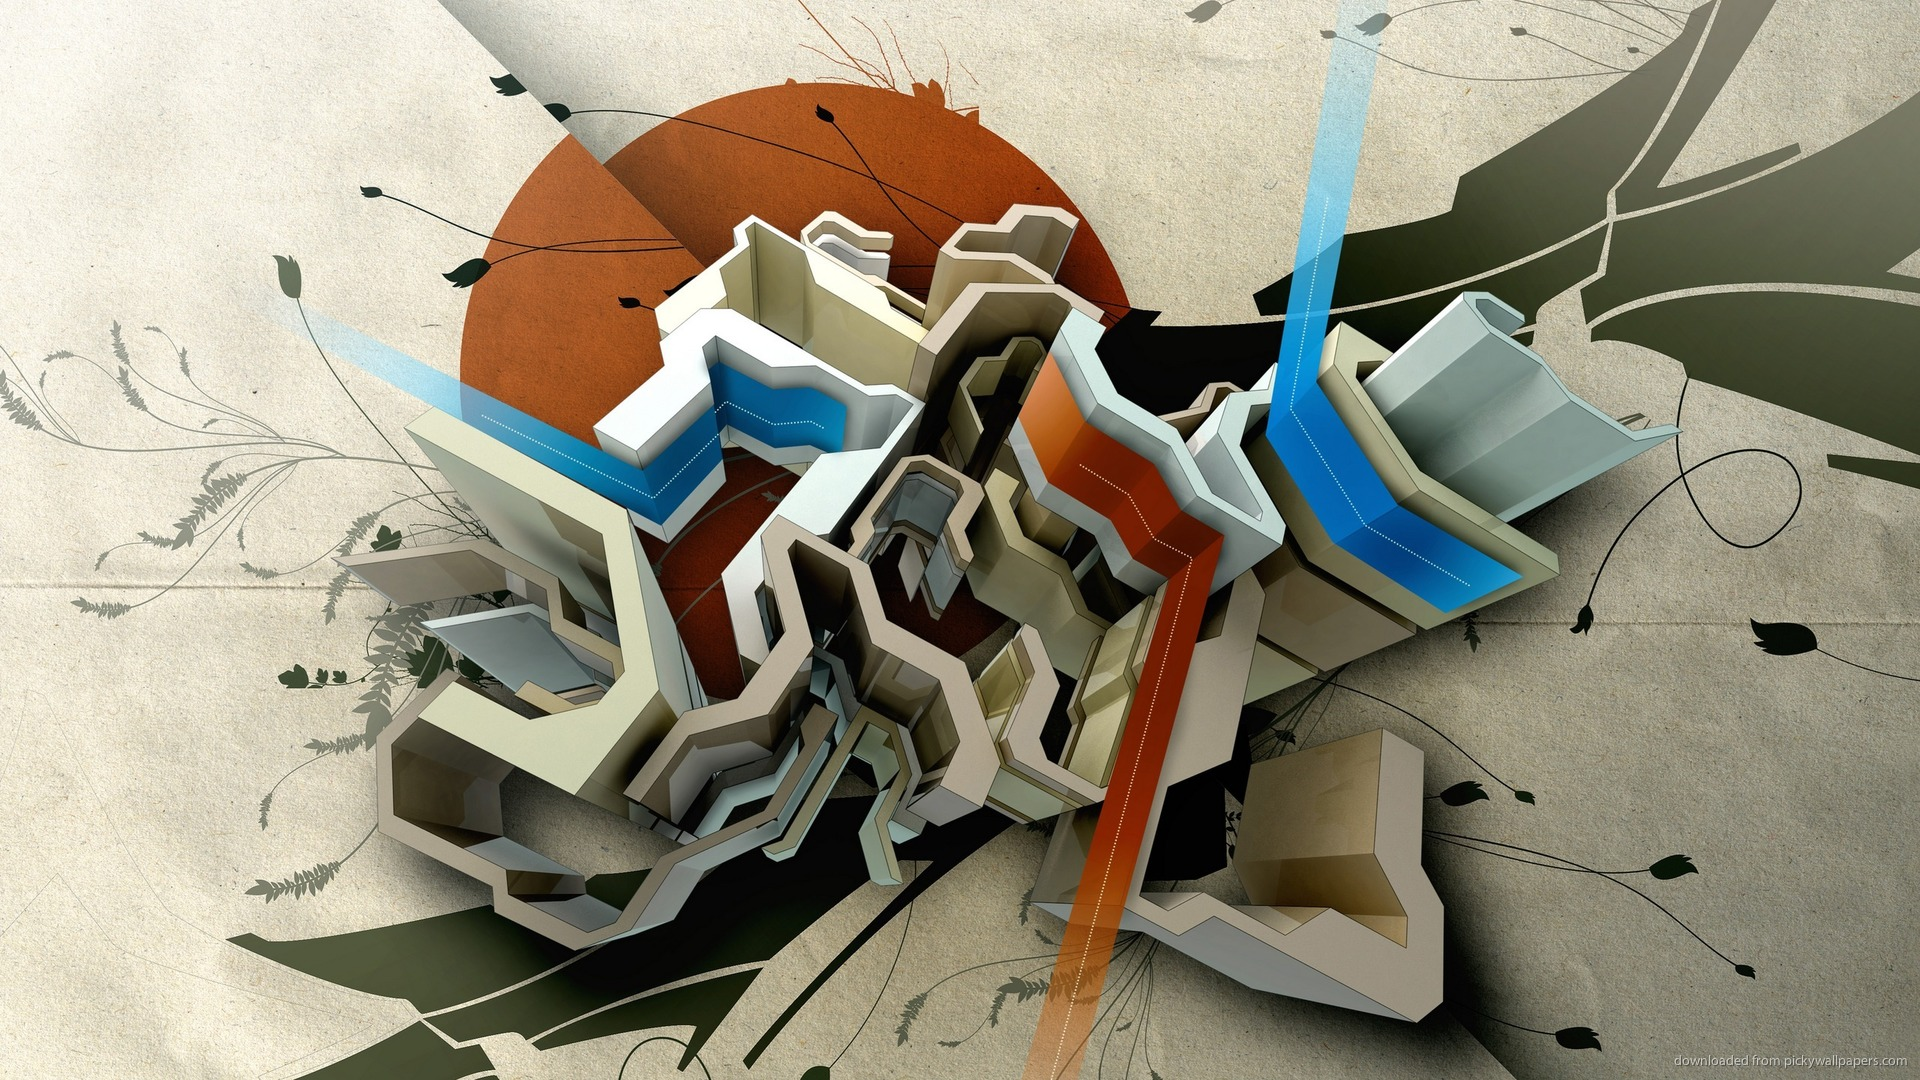 abstract 3d wallpaper 1920x1080 - photo #29